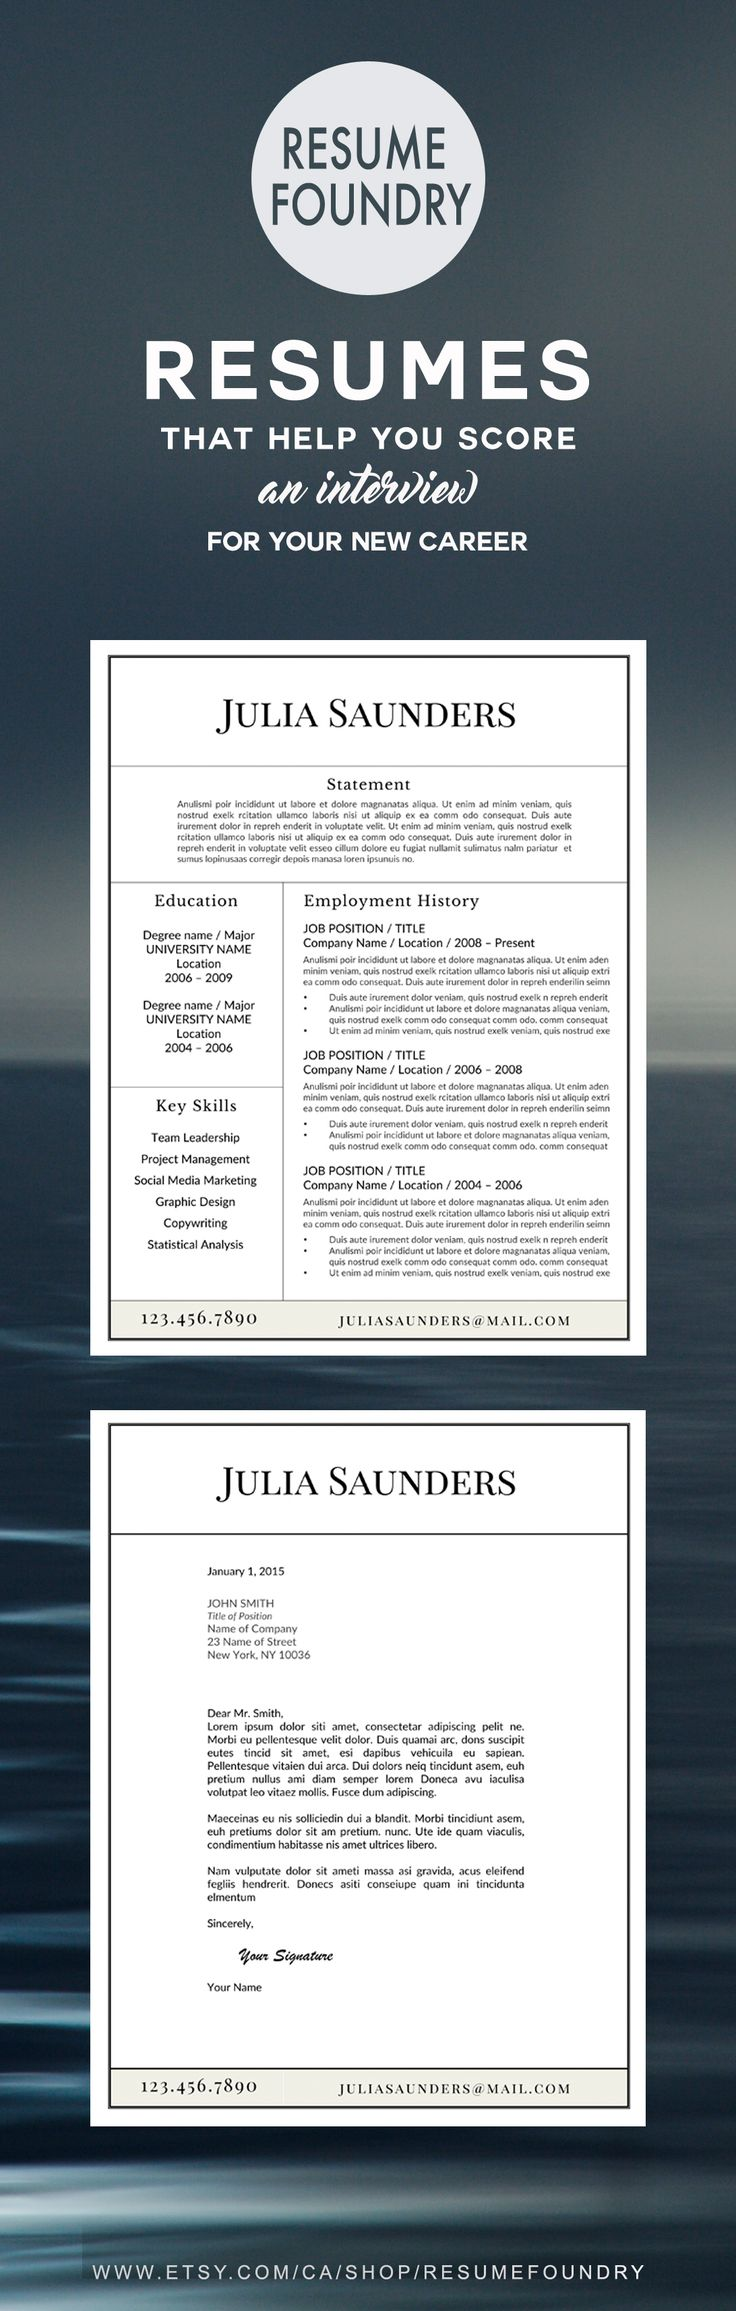 Best 25 Resume templates ideas